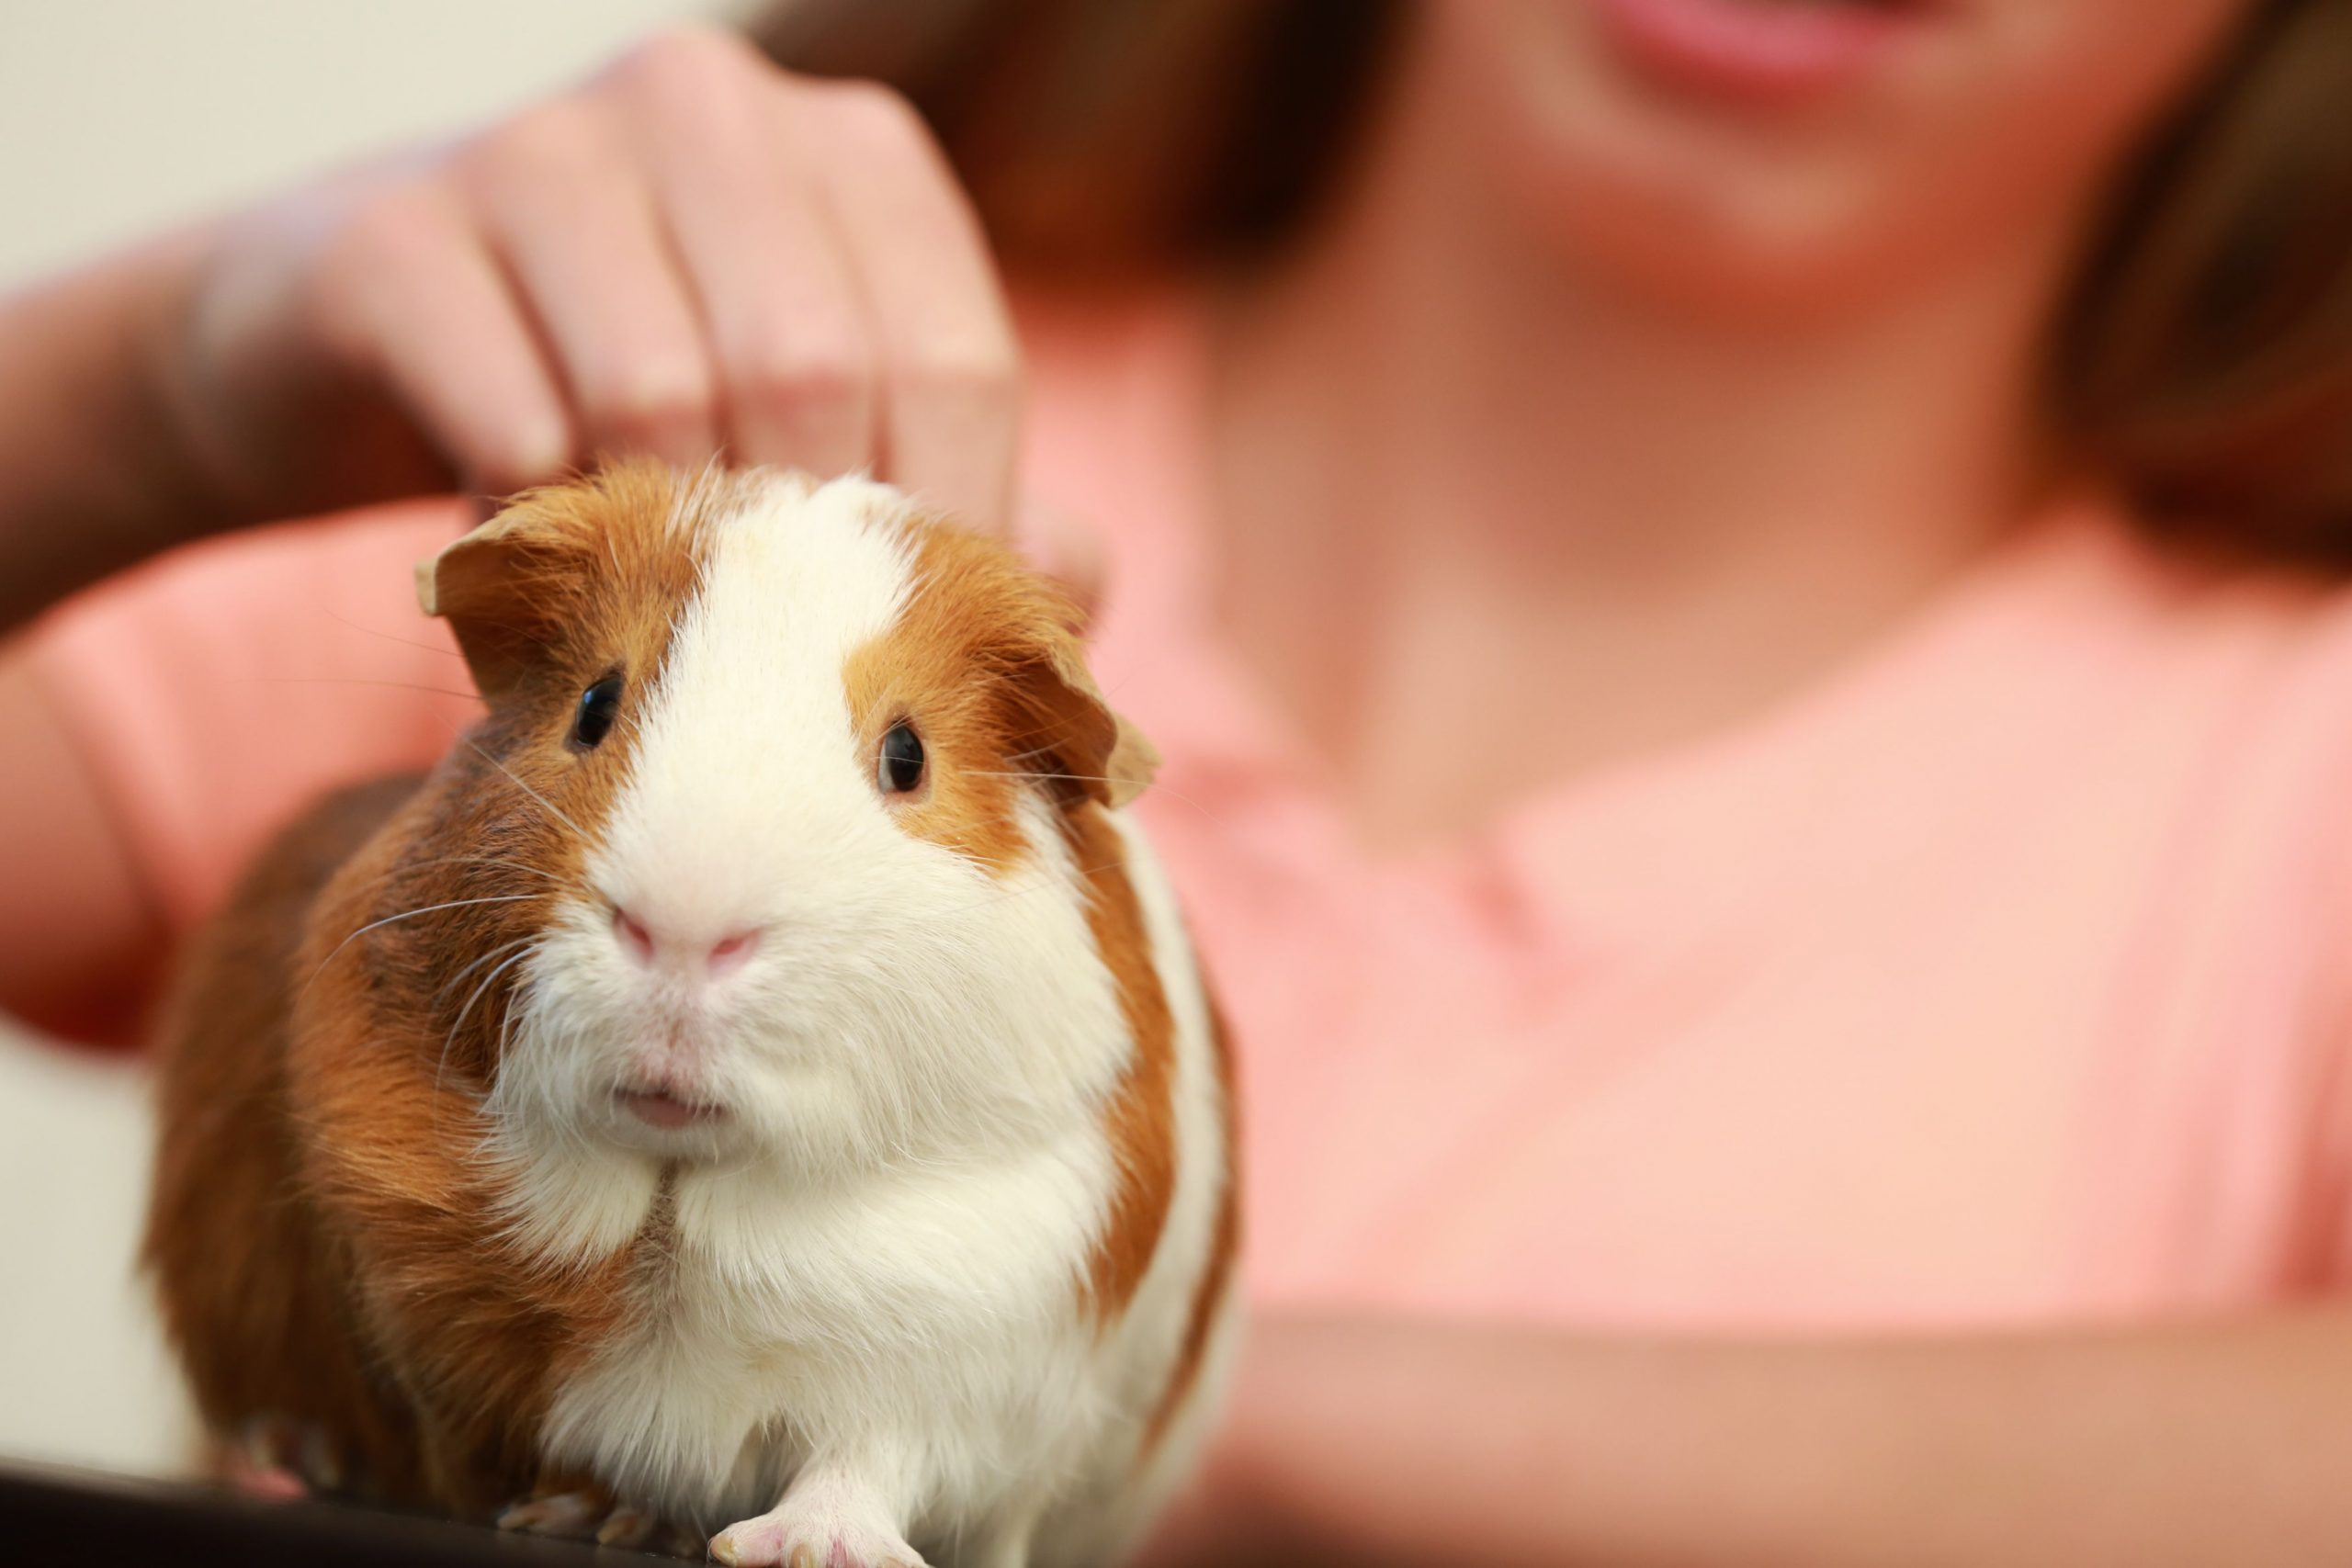 guinea pig enjoys being petted at its back